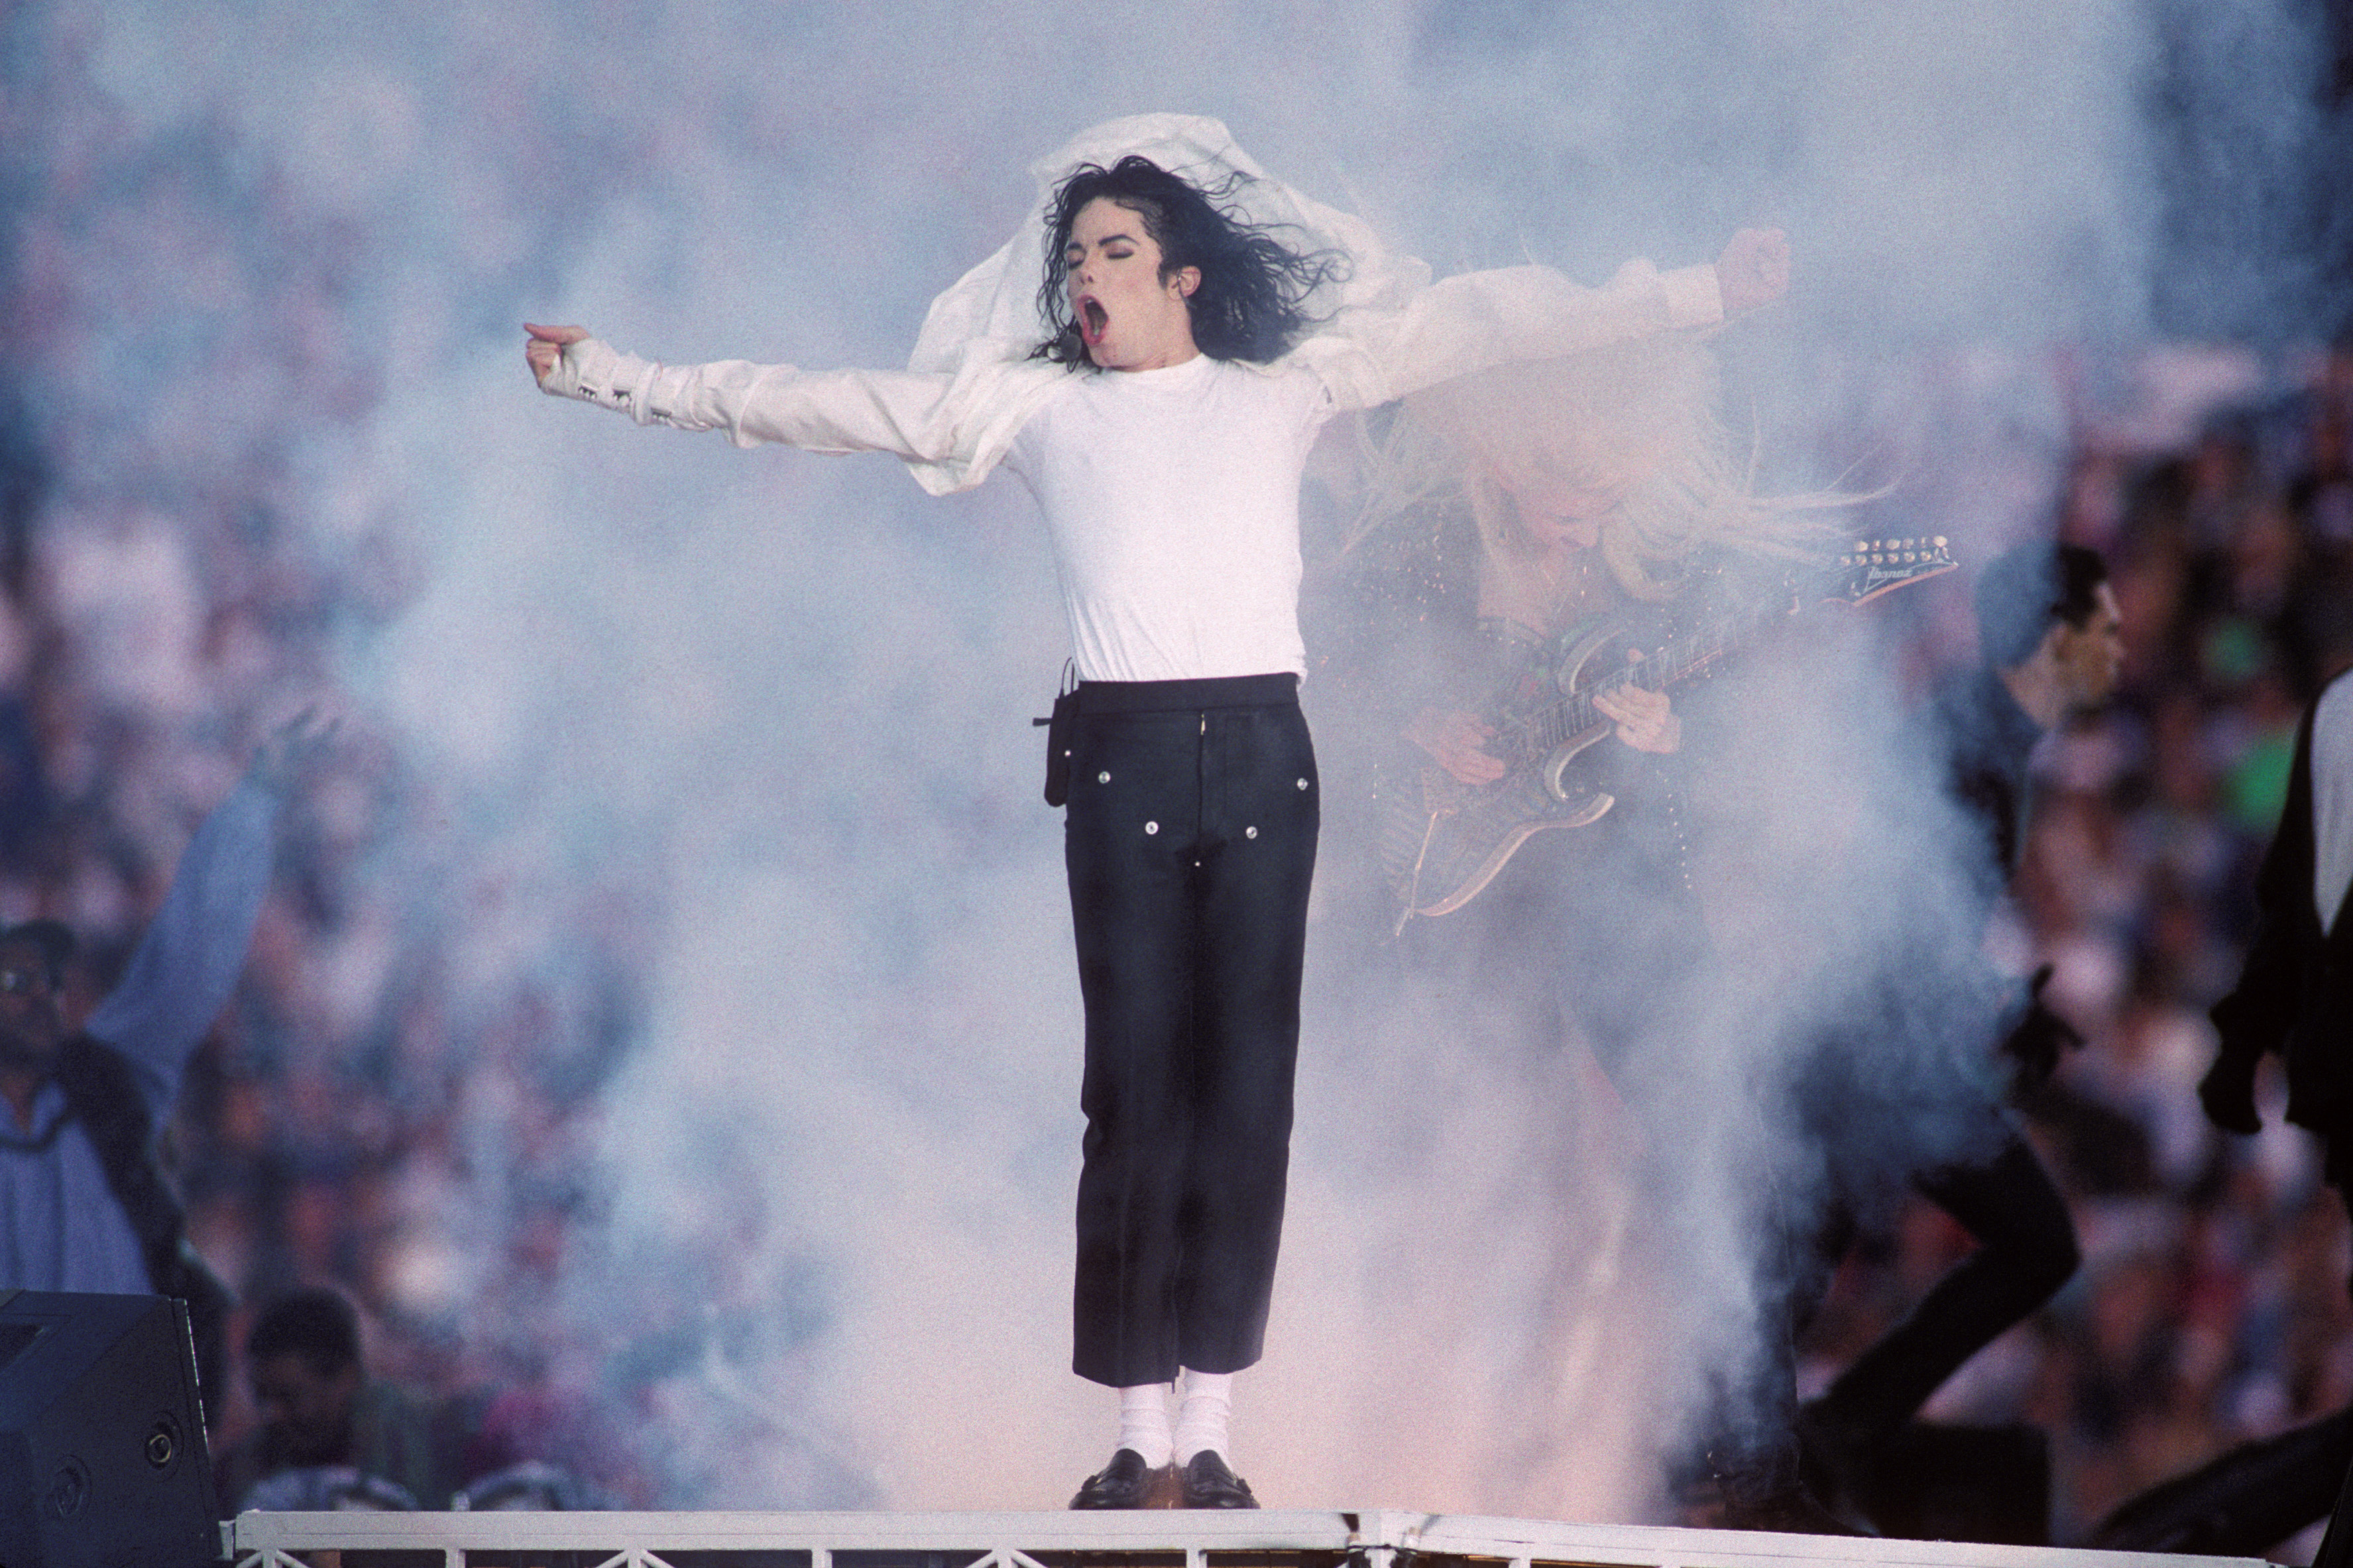 Michael Jackson performs at the Super Bowl XXVII Halftime show at the Rose Bowl on Jan. 31, 1993 in Pasadena, Calif.